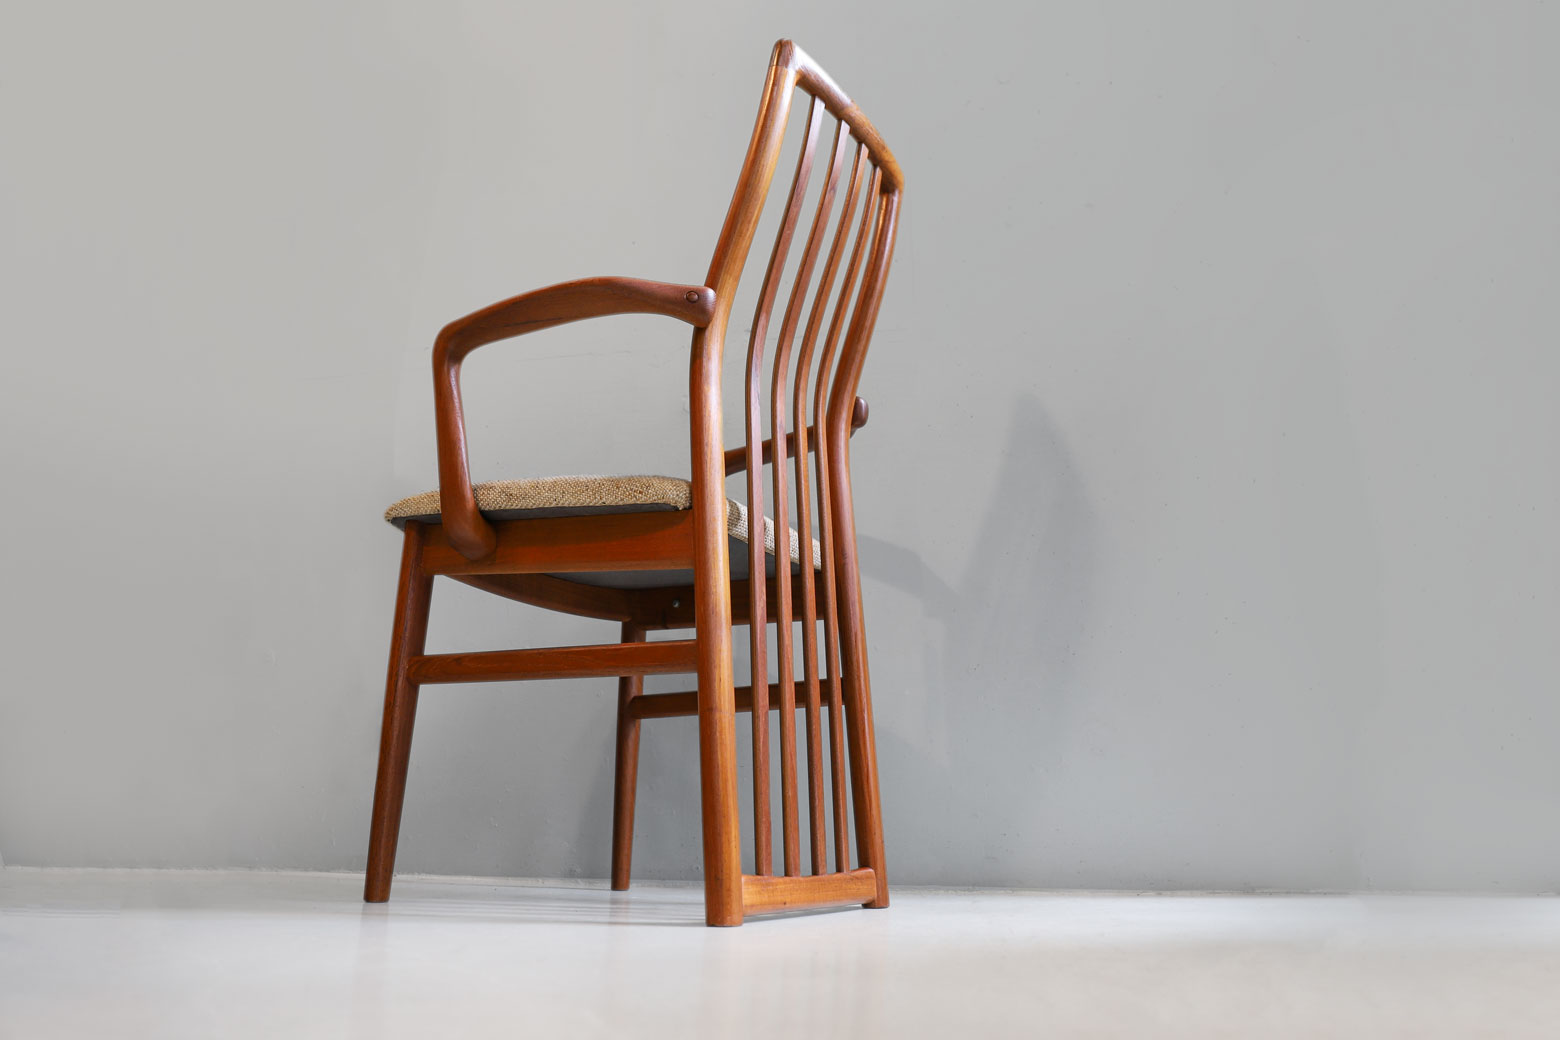 Schou Andersen SVA Møbler Arm Chair designed by Kai Kristiansen/アームチェア スコーアンデルセン SVAモブラー カイ・クリスチャンセン